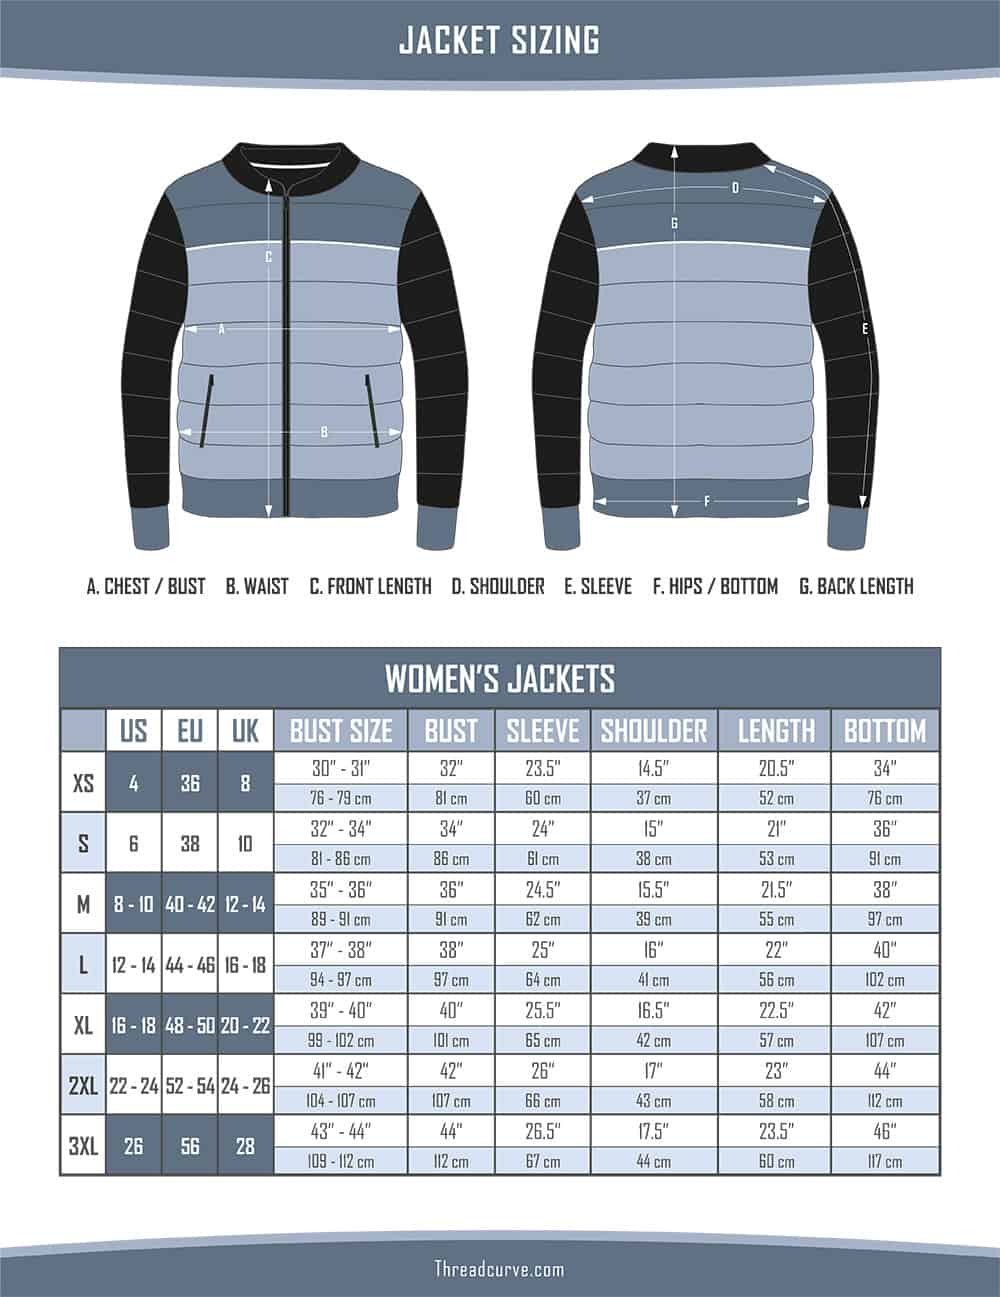 This is the chart for Women's Jackets Sizes.